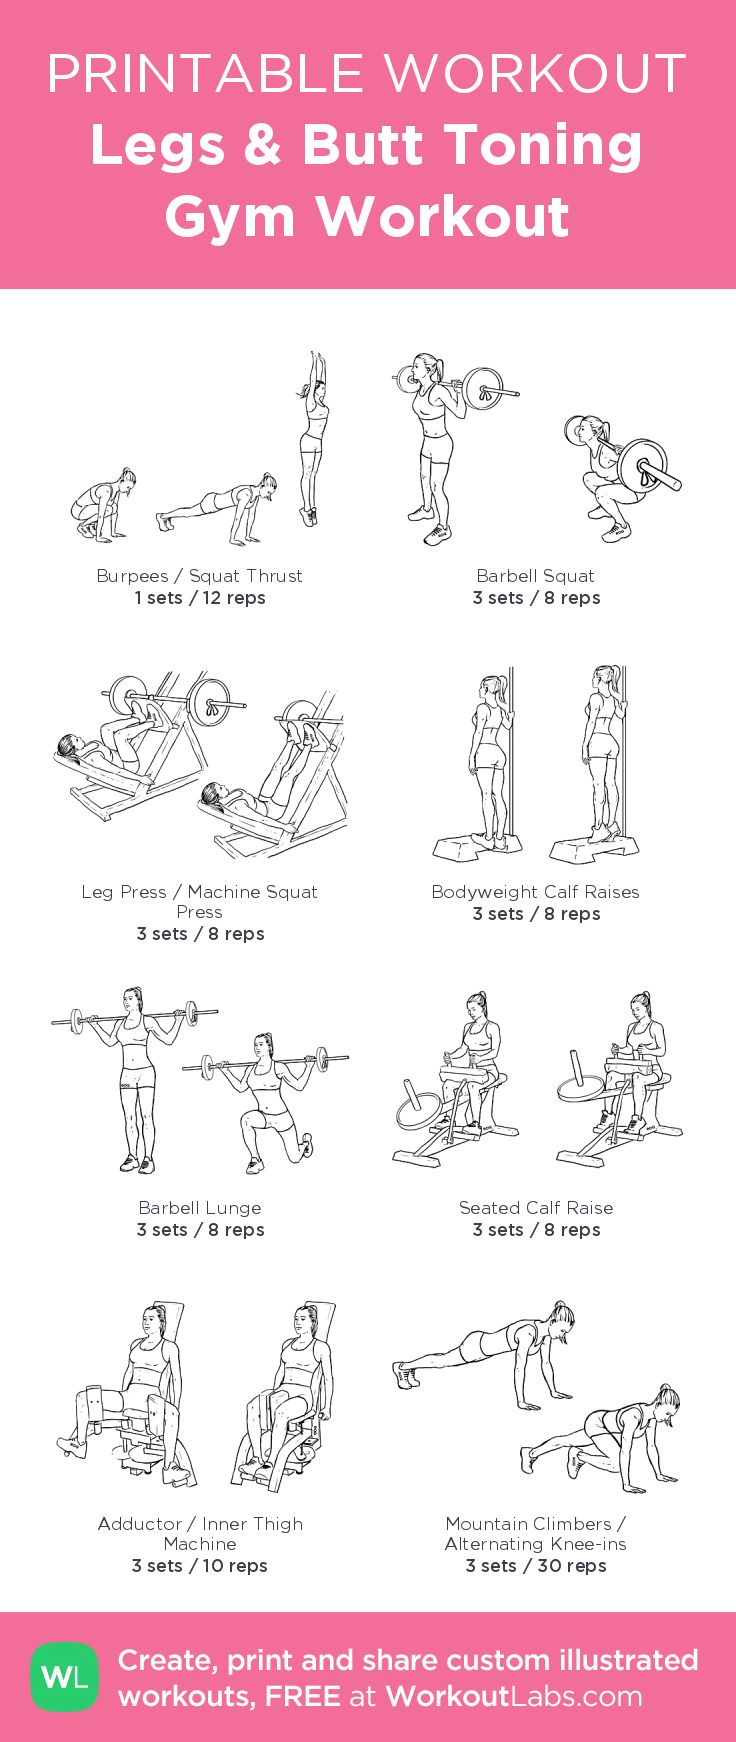 Legs & Butt Toning Gym Workout–my custom exercise plan created at WorkoutLabs.com • Click through to download as a printable workout PDF #customworkout